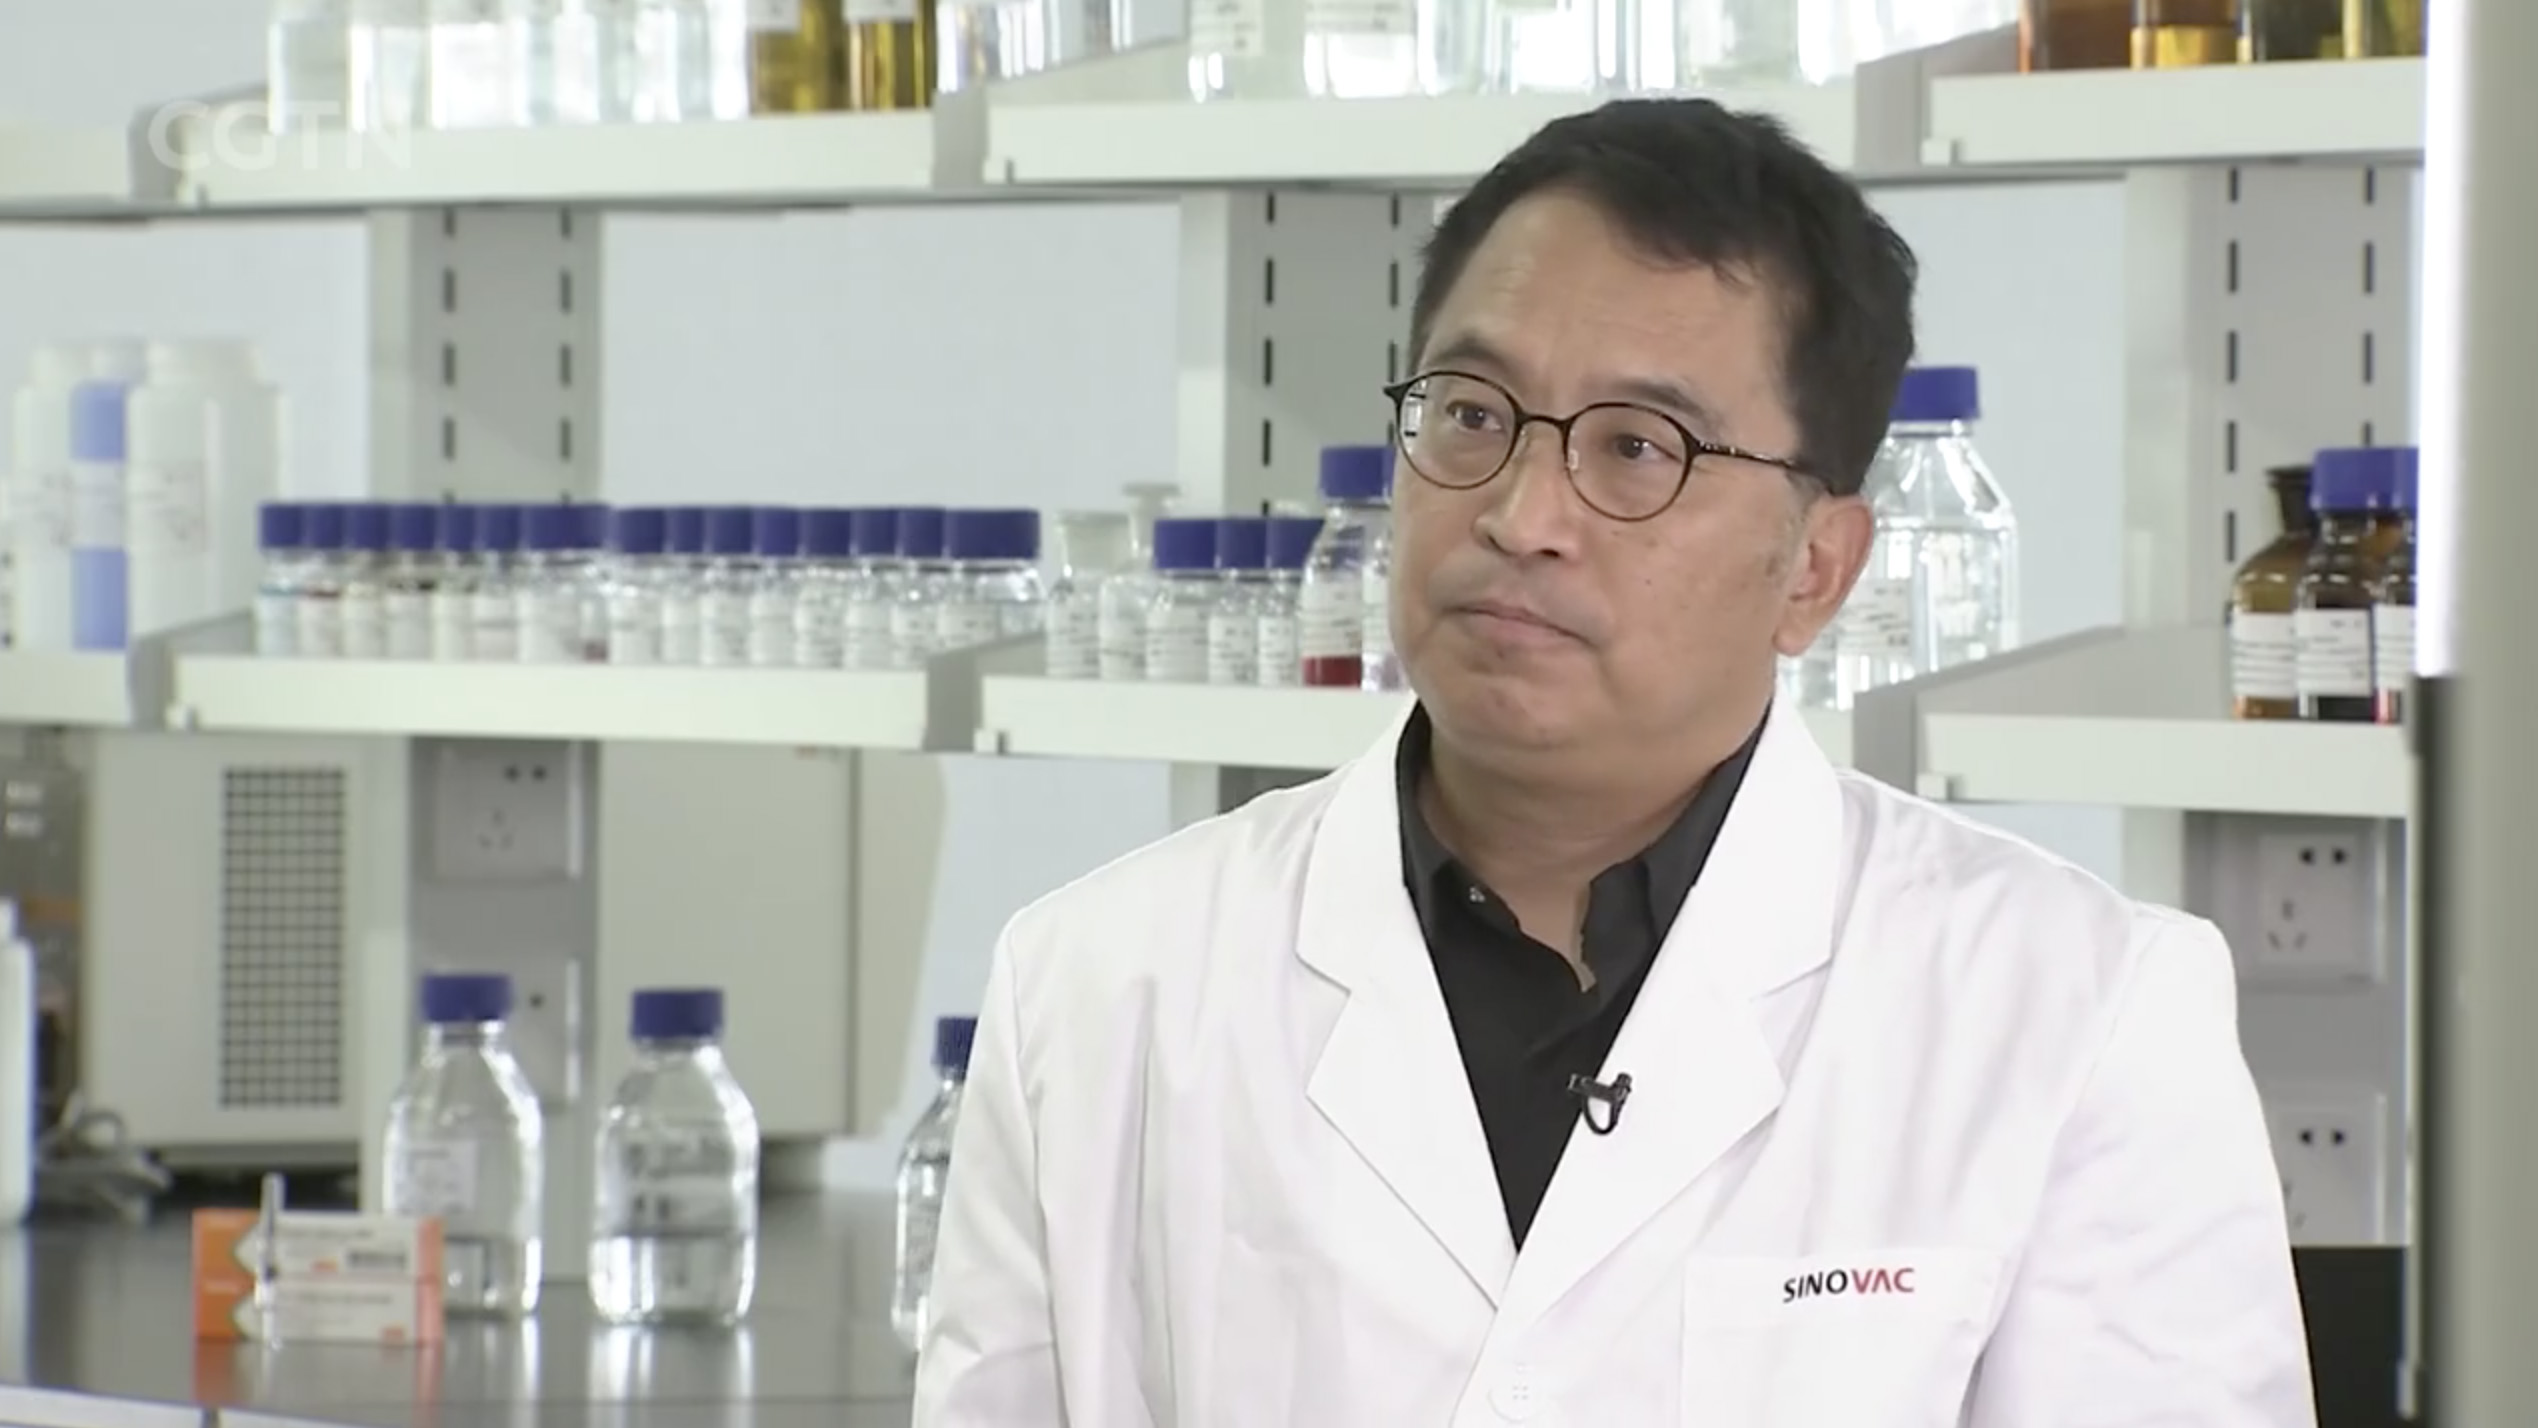 Sinovac CEO: Our vaccine is effective against many strains - CGTN